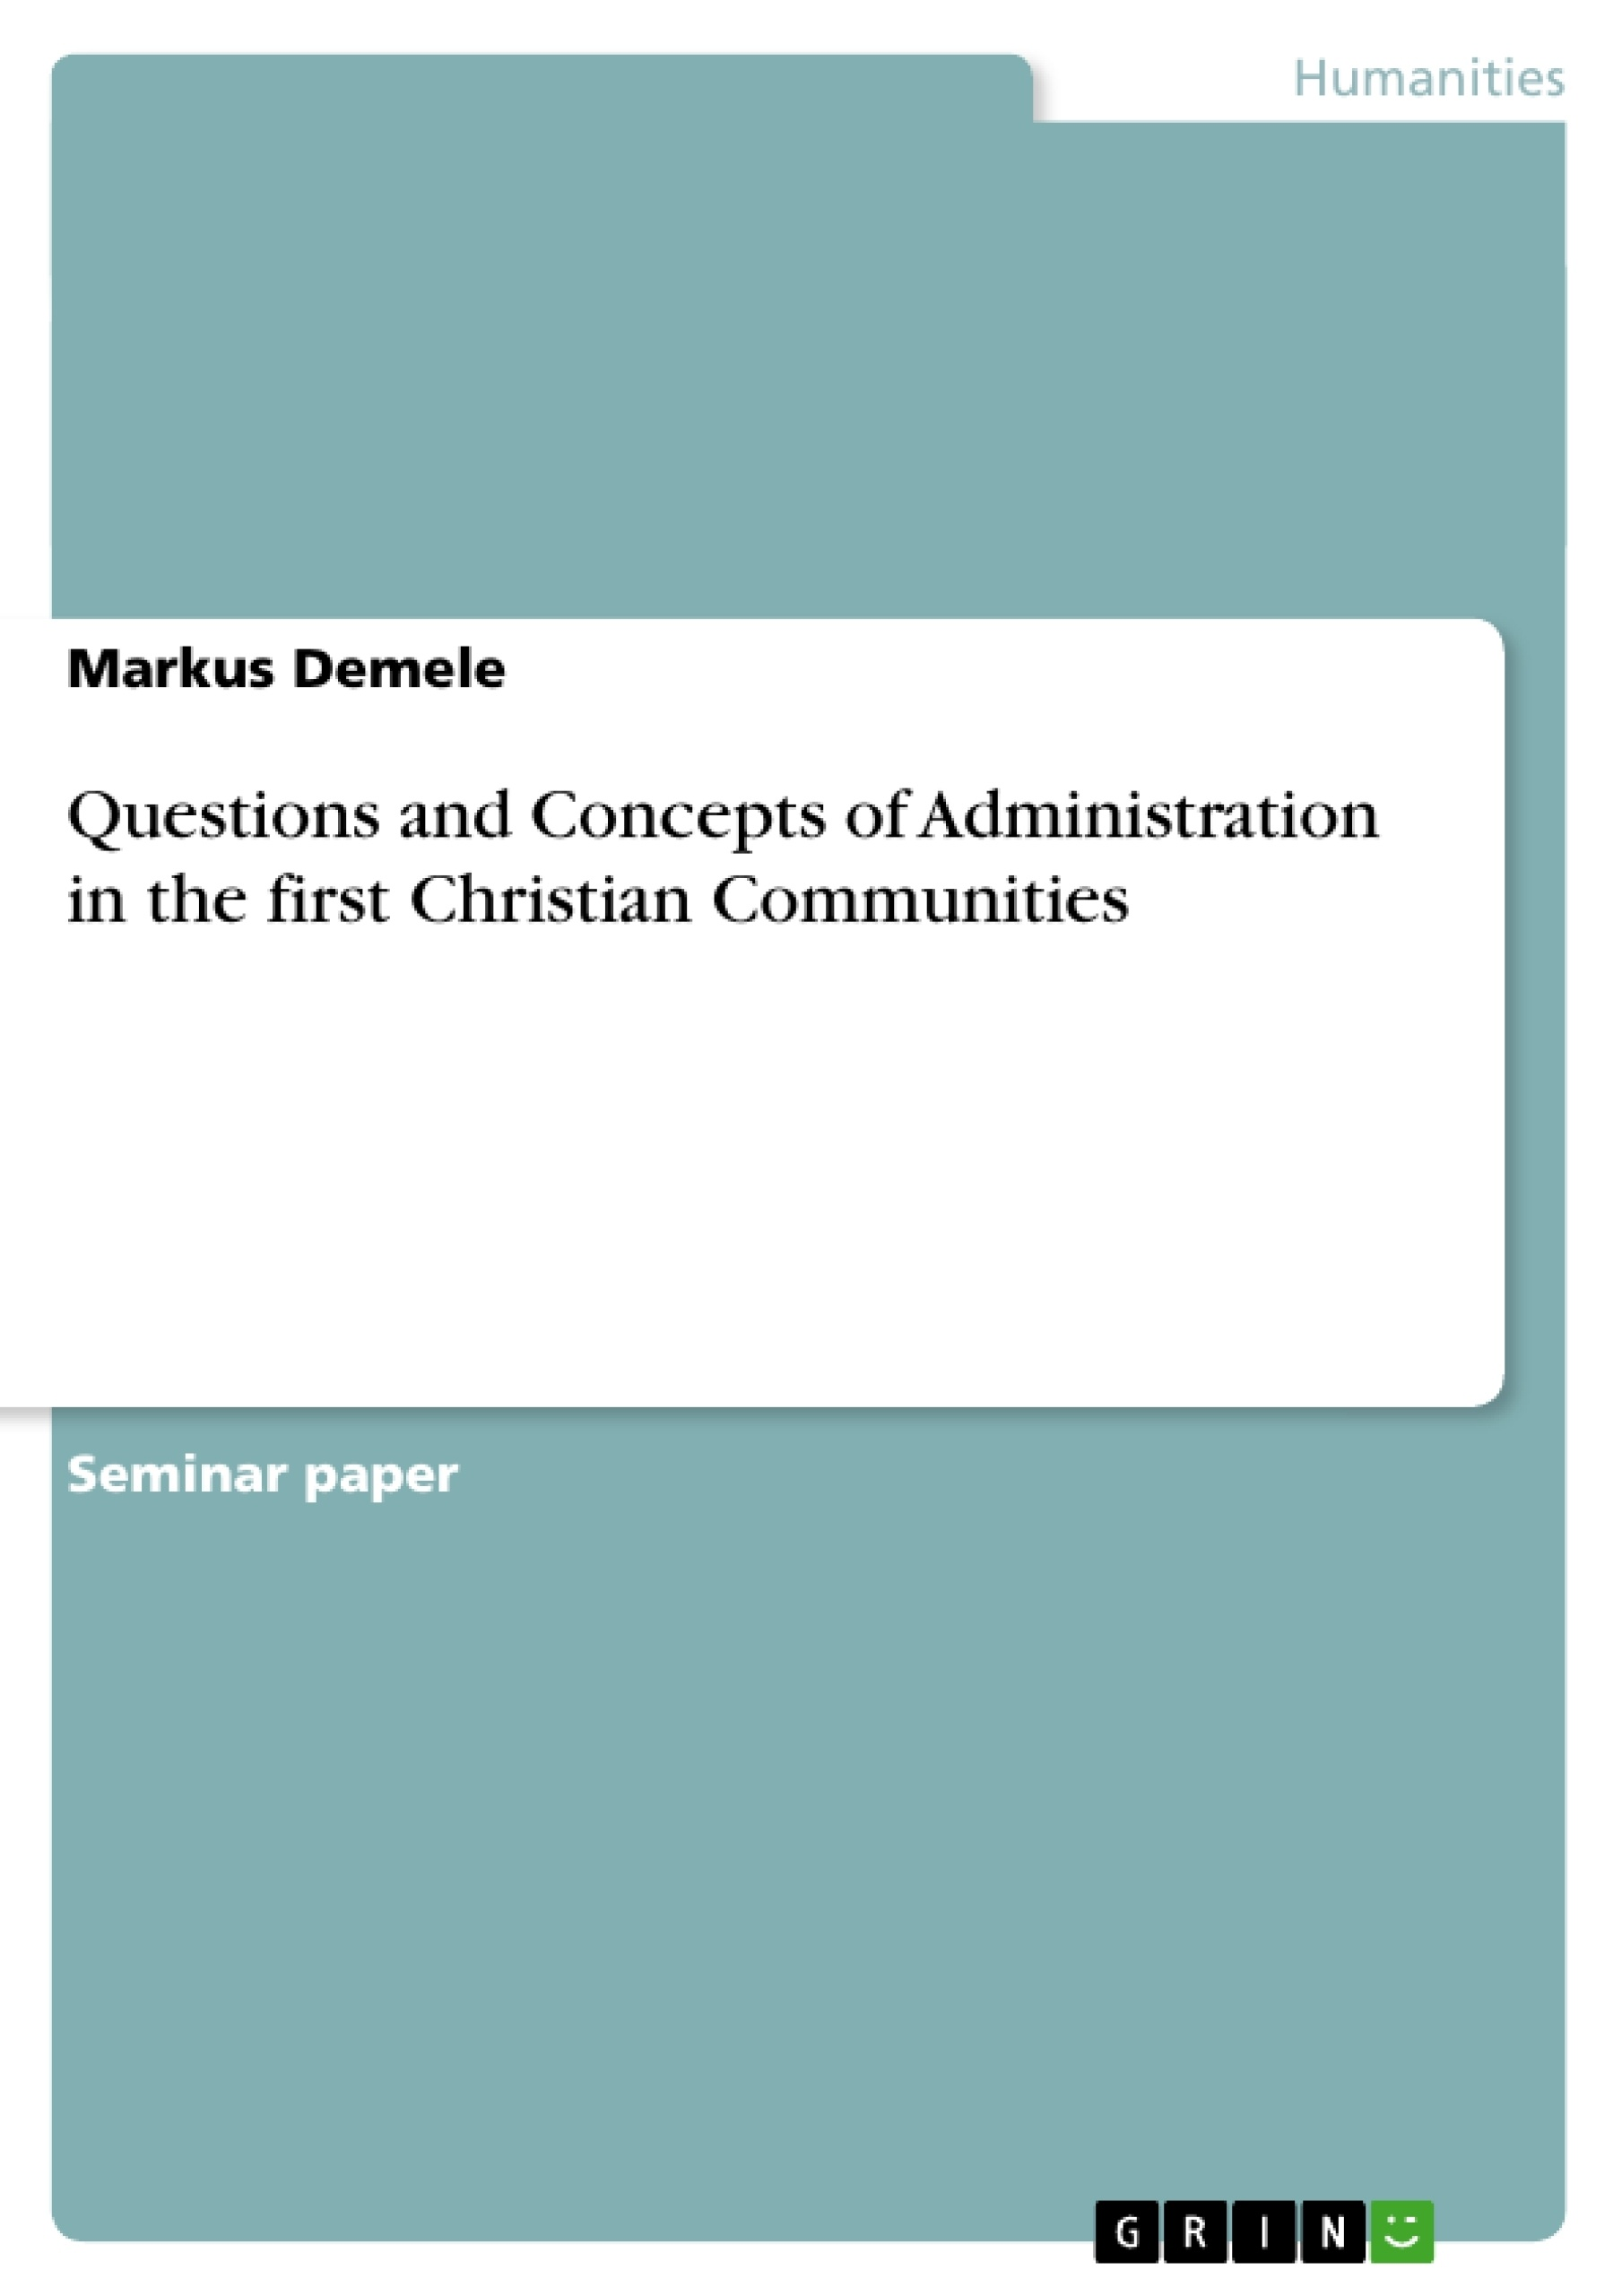 Title: Questions and Concepts of Administration in the first Christian Communities